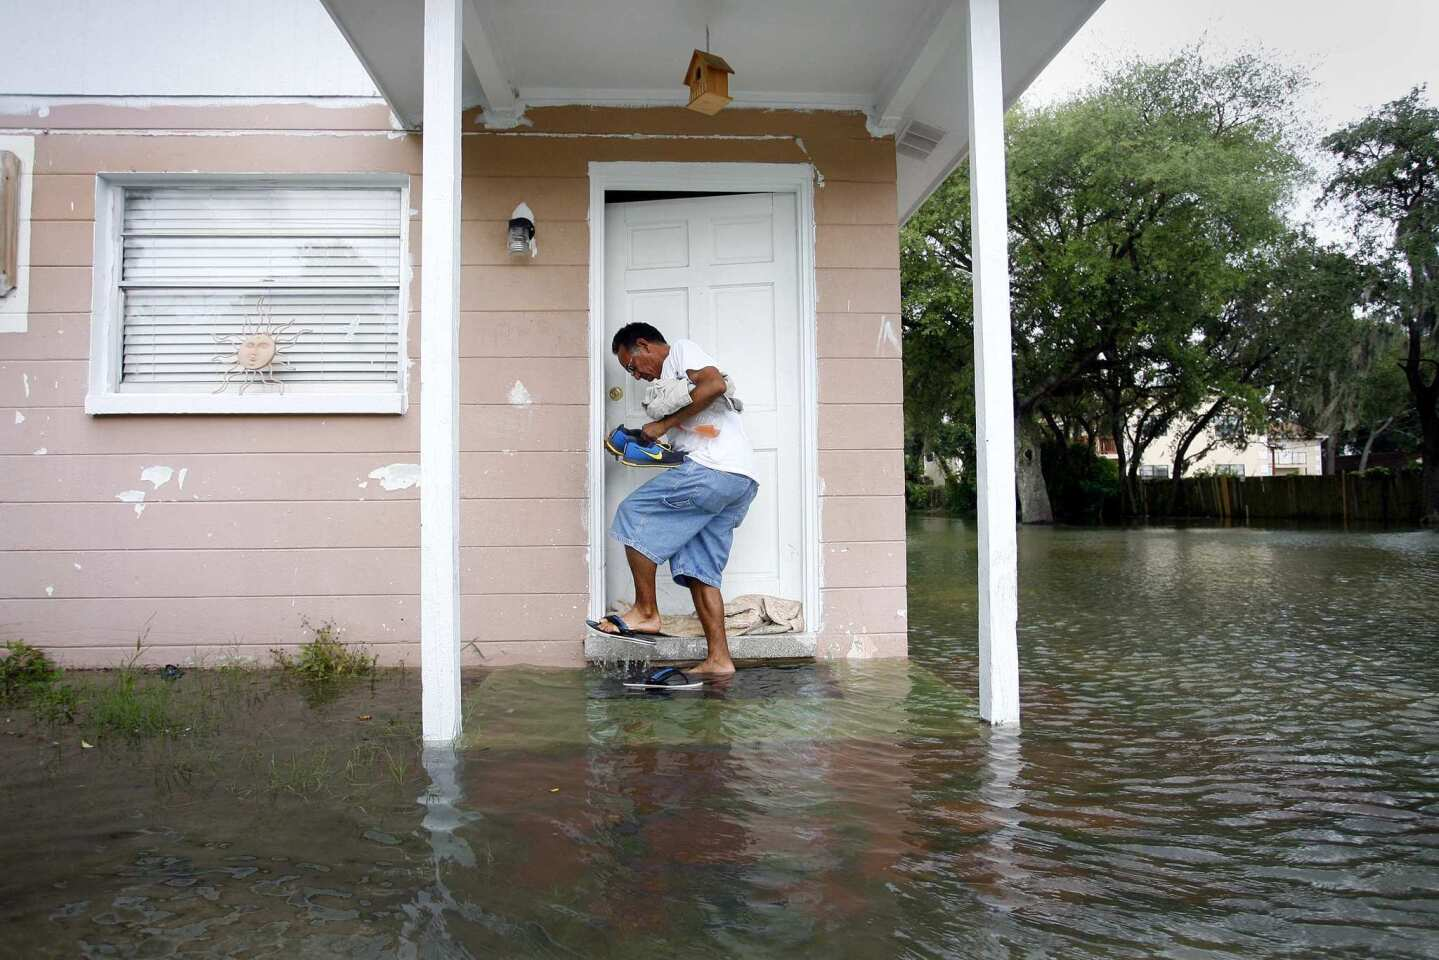 Mario Funes 61, of Tampa, leaves his apartment complex after rainwater from Tropical Storm Debby flooded the neighborhood.